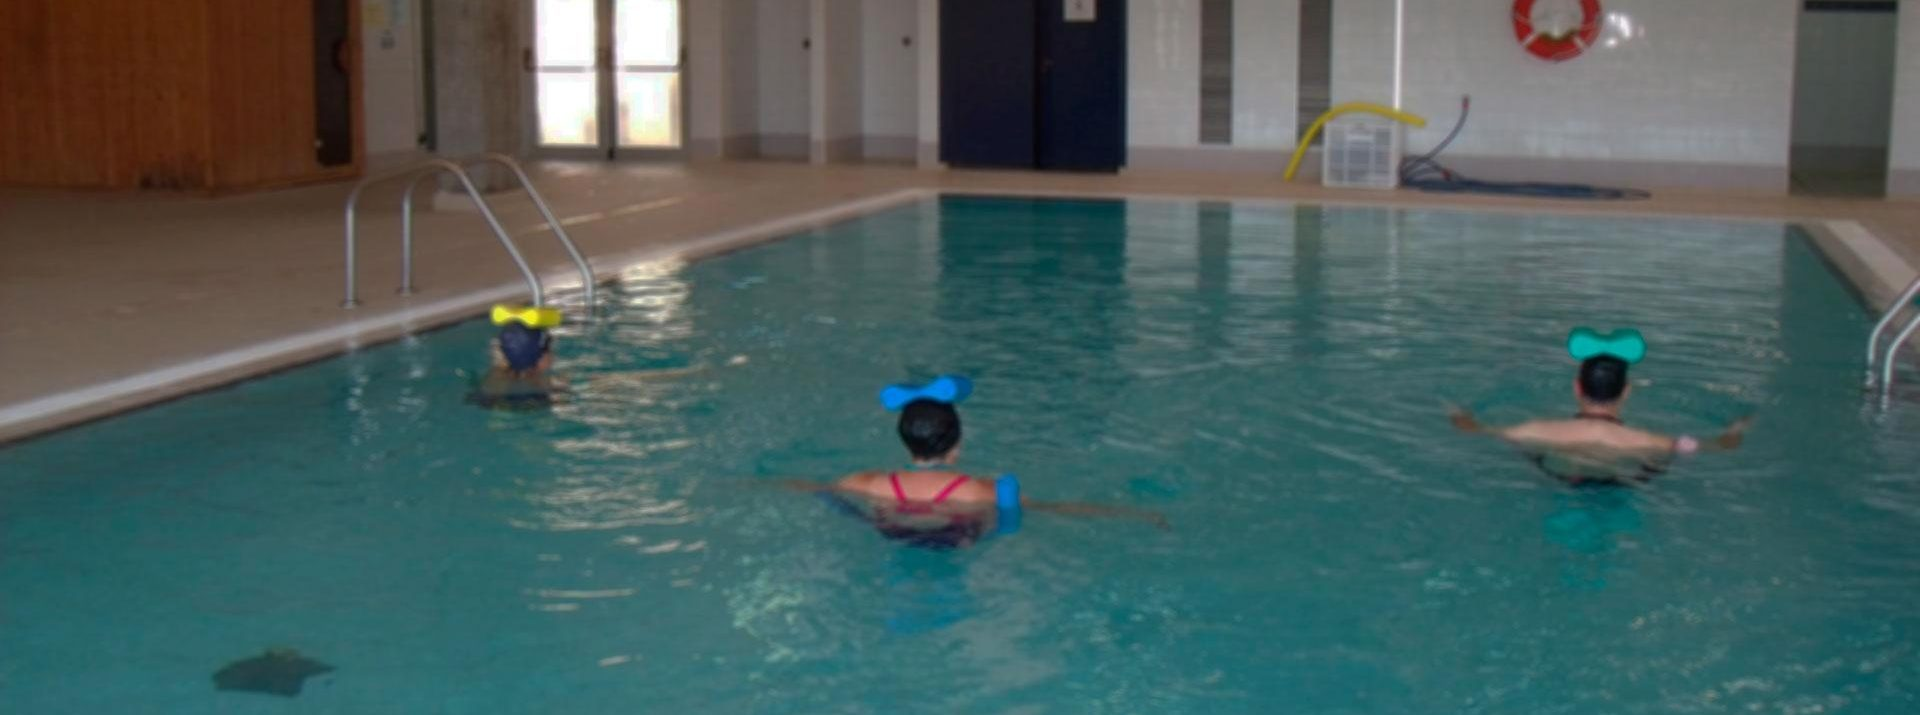 Therapeutic Swimming, Pregnant, Children, Aqua Health...